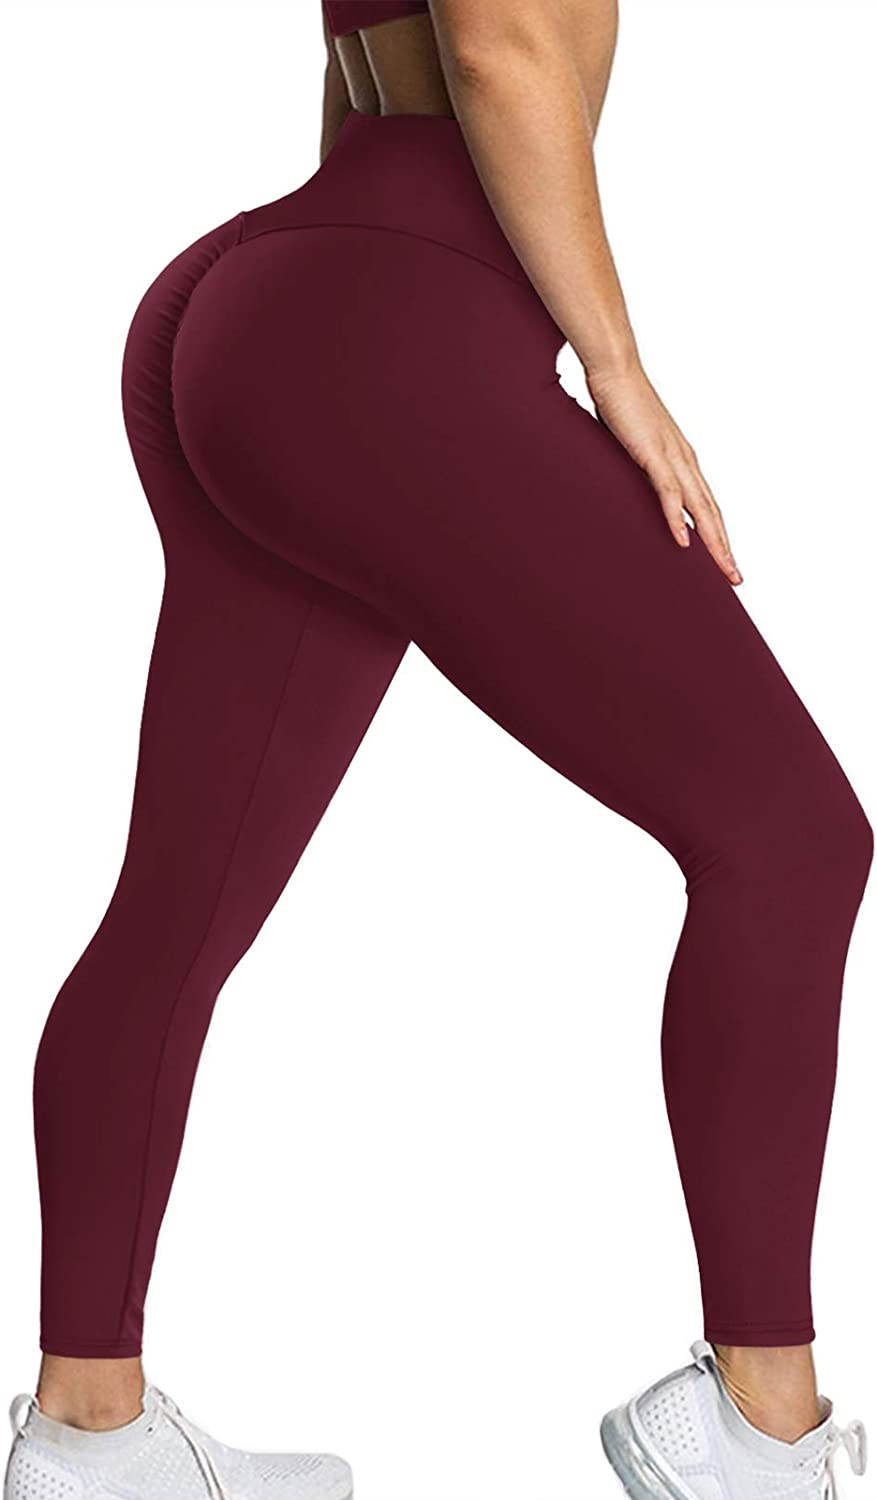 YAMOM Women High Waisted Scrunch Booty Butt Lifting Leggings Workout Ruched Yoga Pants Tummy Control Tights